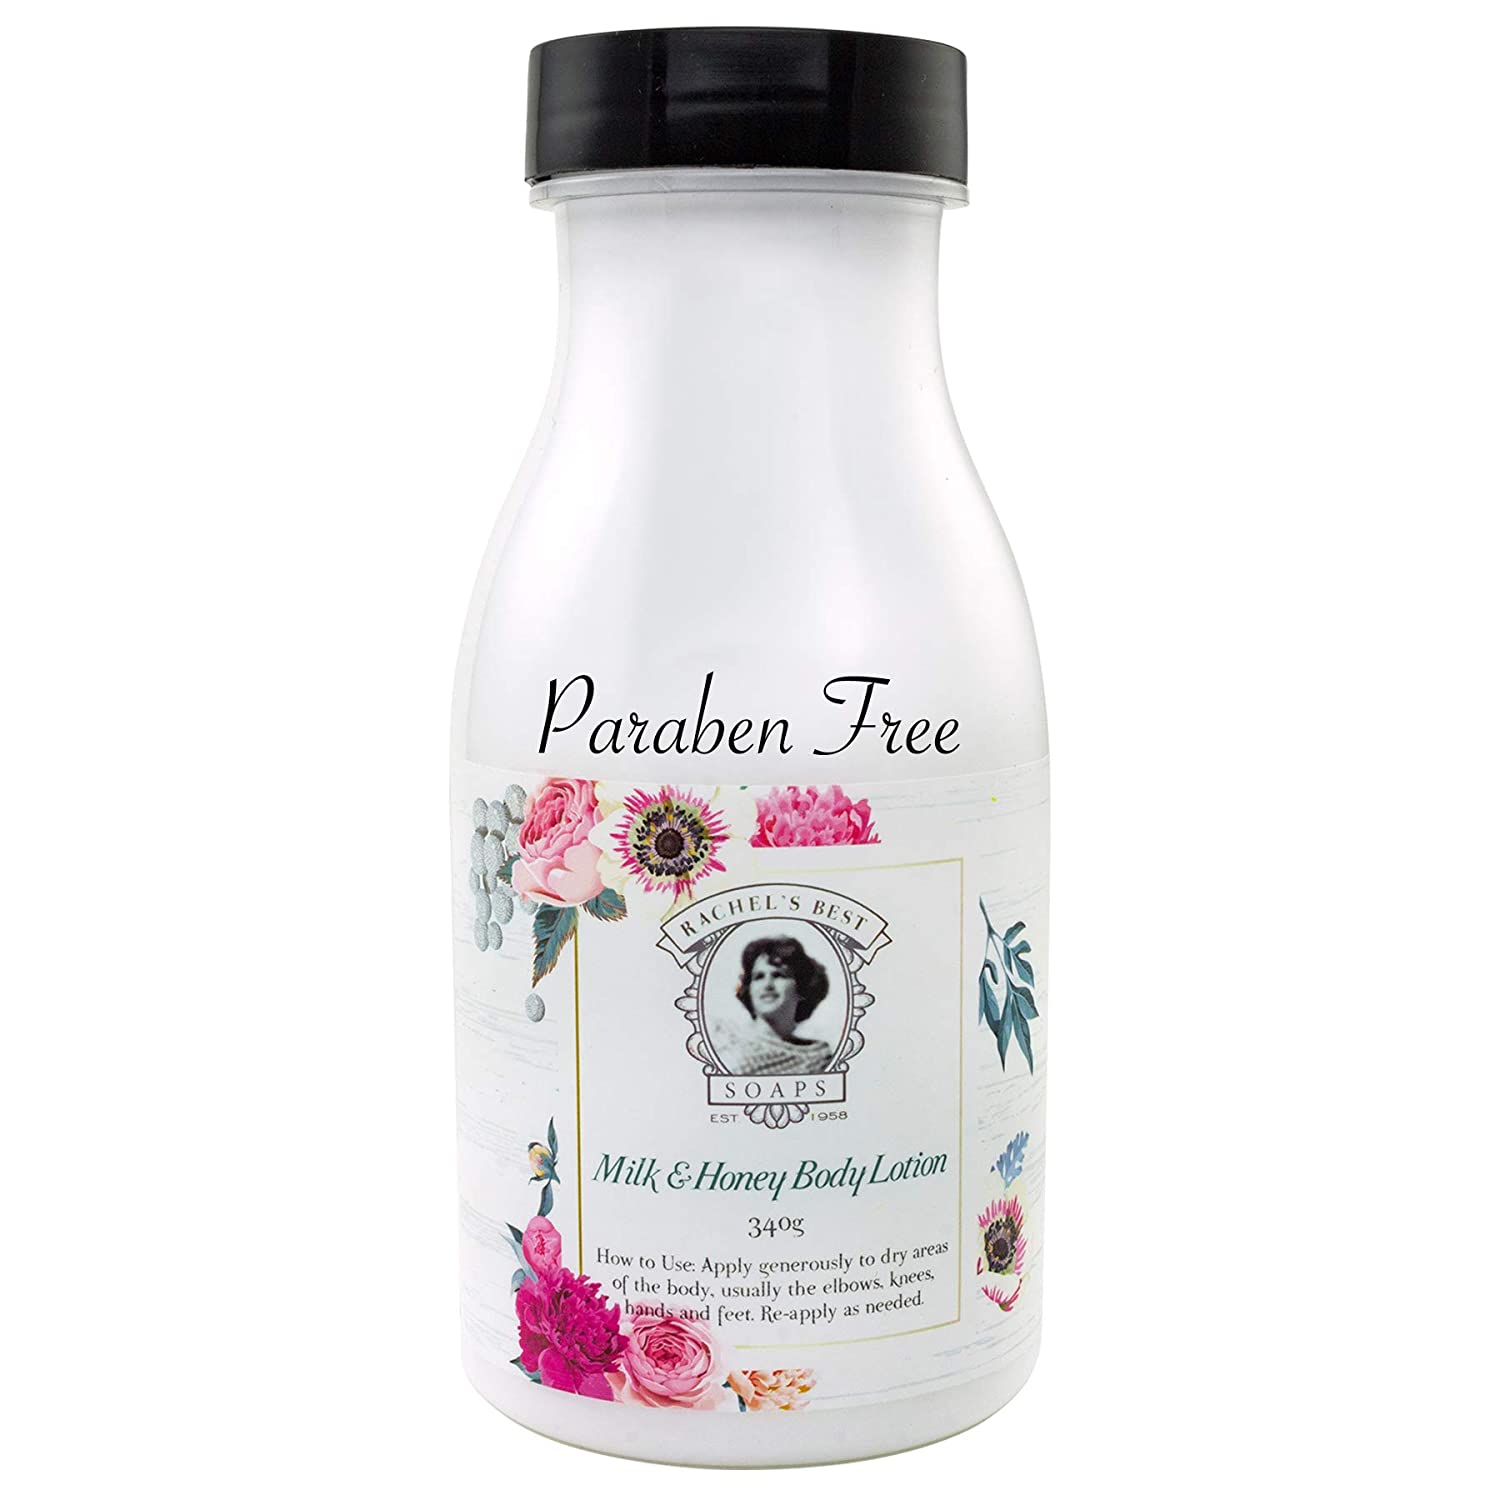 Goats Milk and Honey Body Lotion - Paraben Free Lotion - Replenish Moisture to Dry, Tired, Dehydrated Skin - 340 g